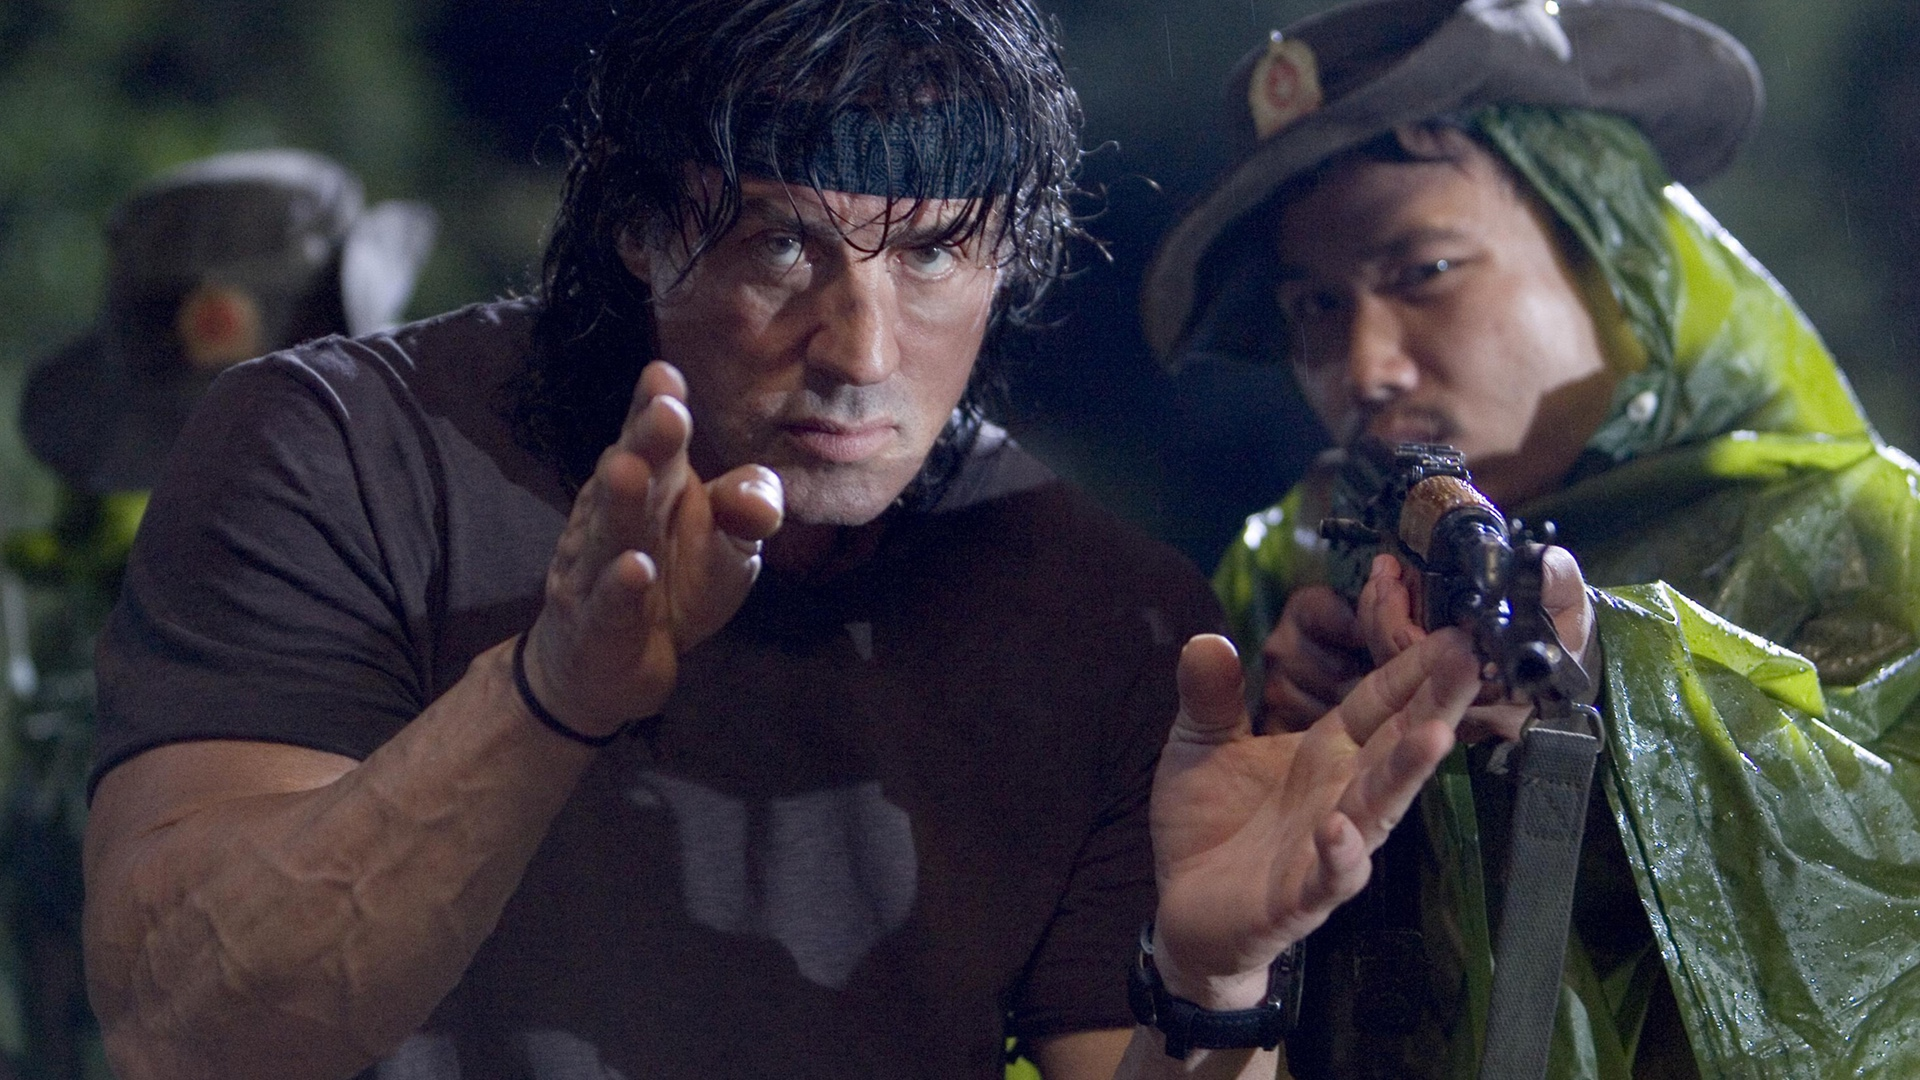 sylvester-stallone-teases-that-rambo-5-is-coming-soon-social.jpg